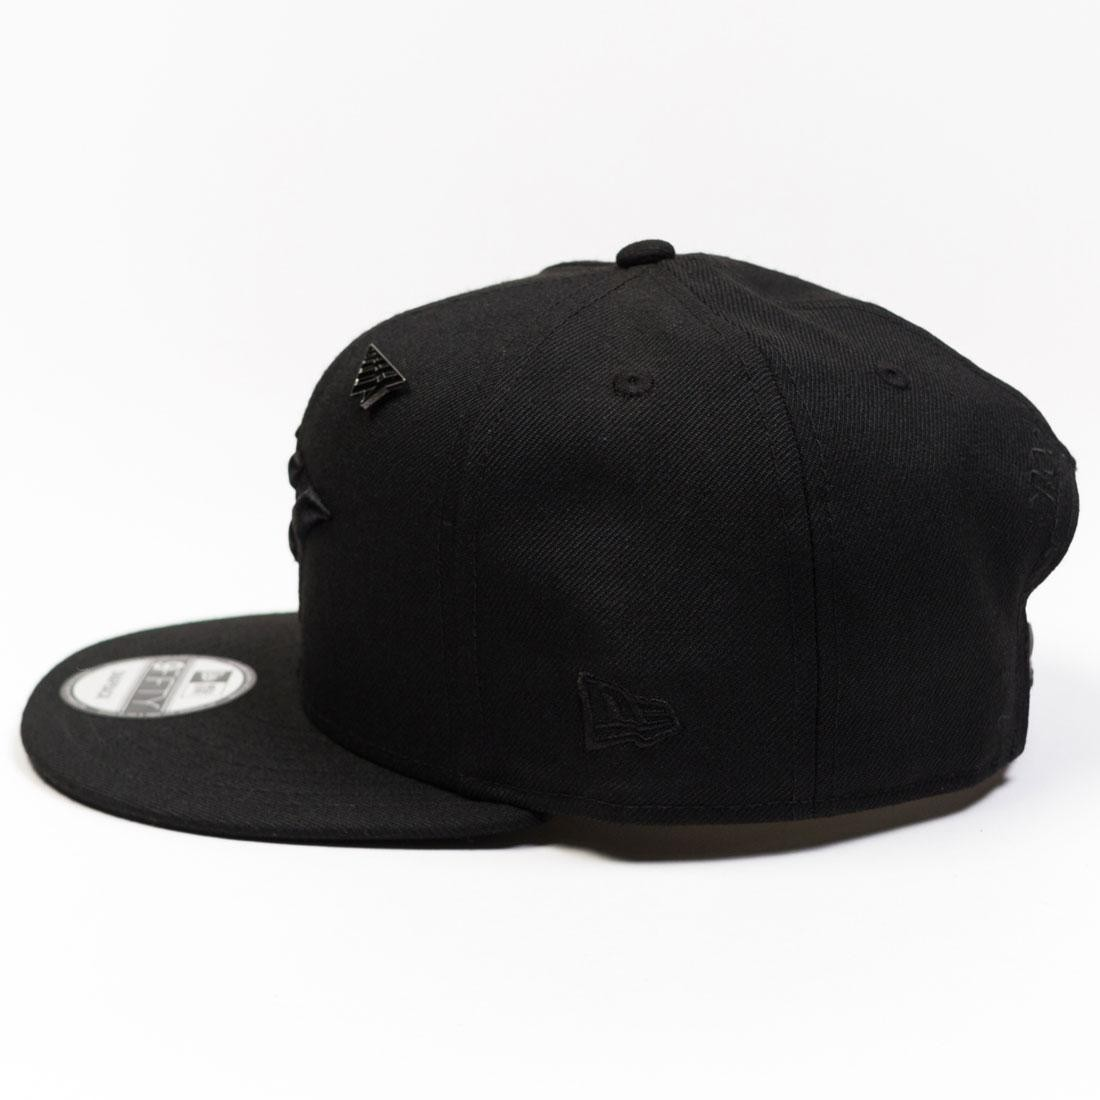 7dd41b5bb96 Paper Planes The Crown Snapback With Pin and Black Undervisor (black   black )